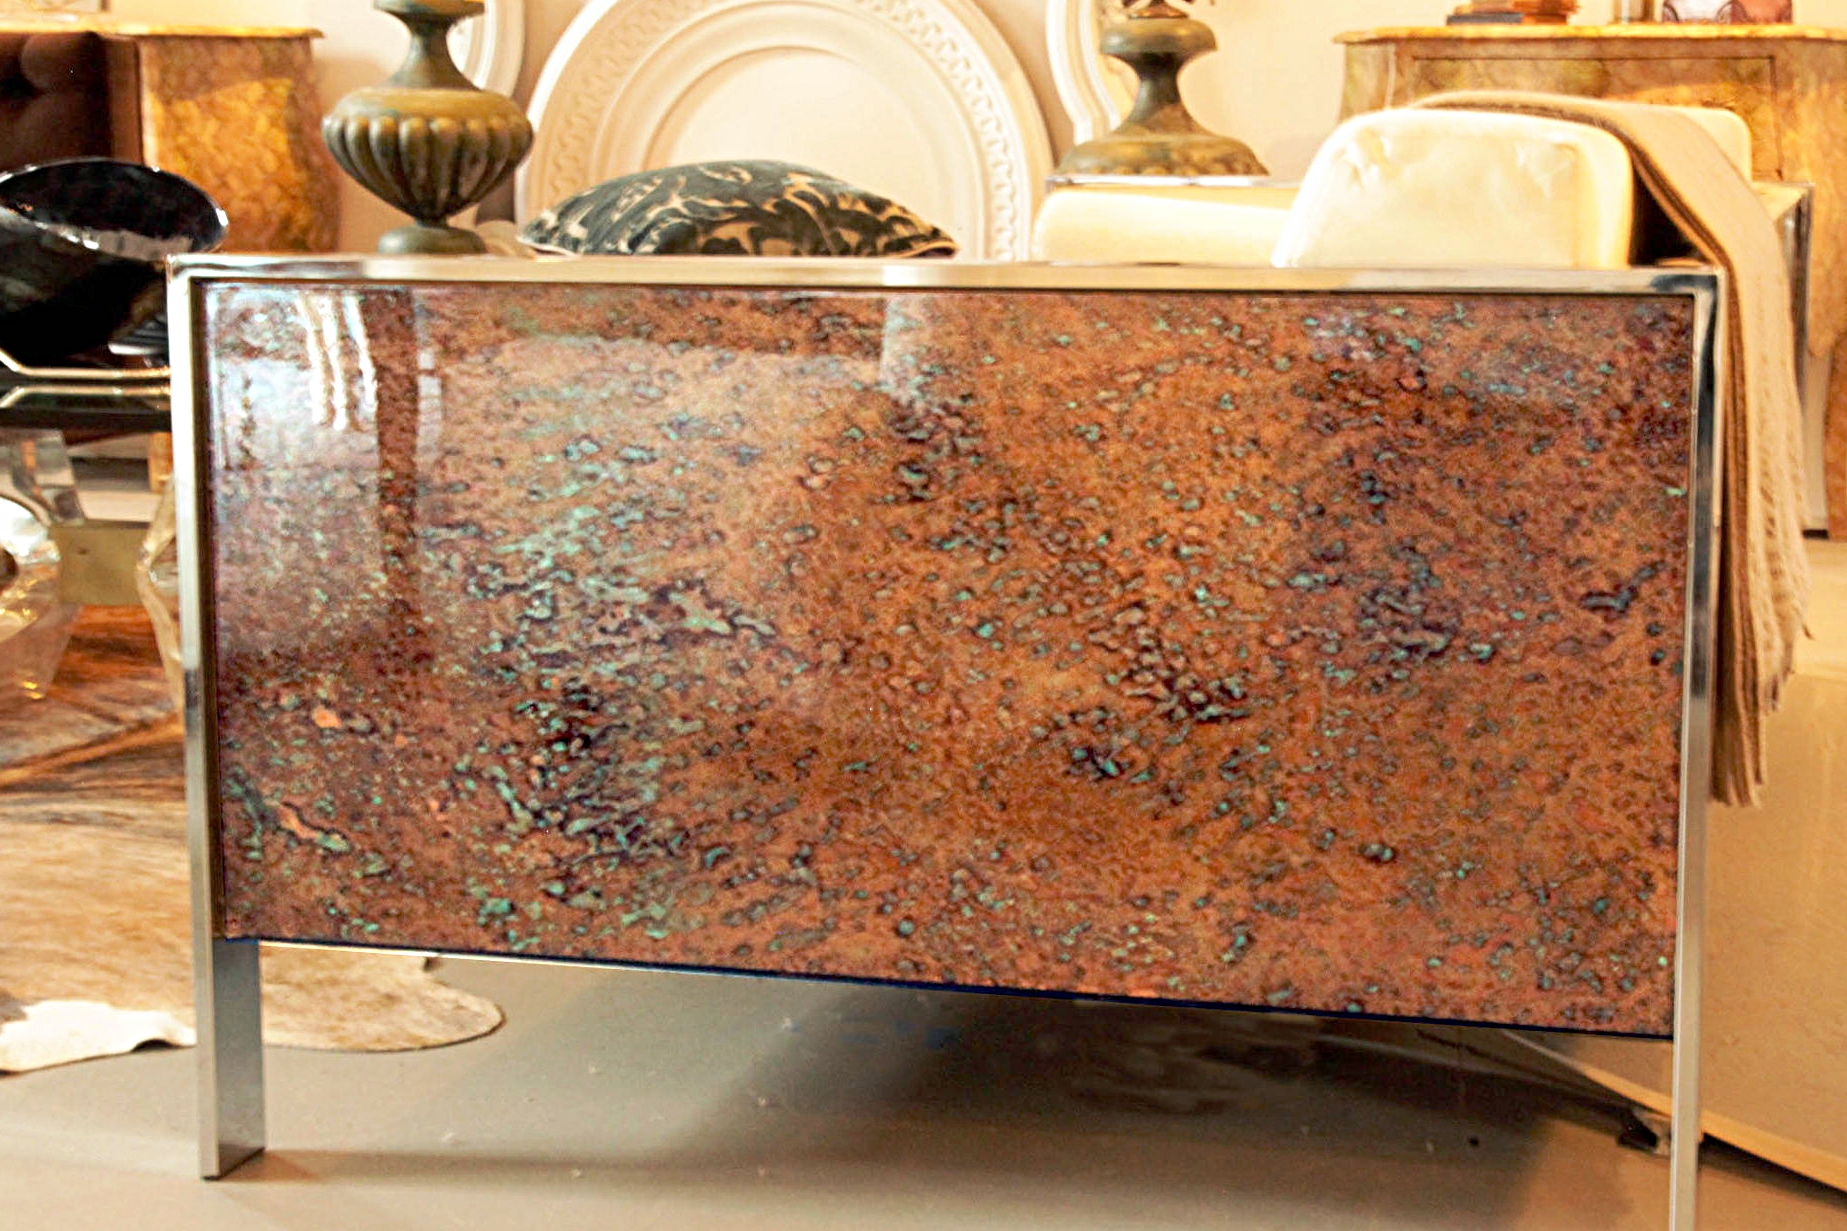 Detail of side of sofa; hand patinaed copper with bronze and turquoise colors.